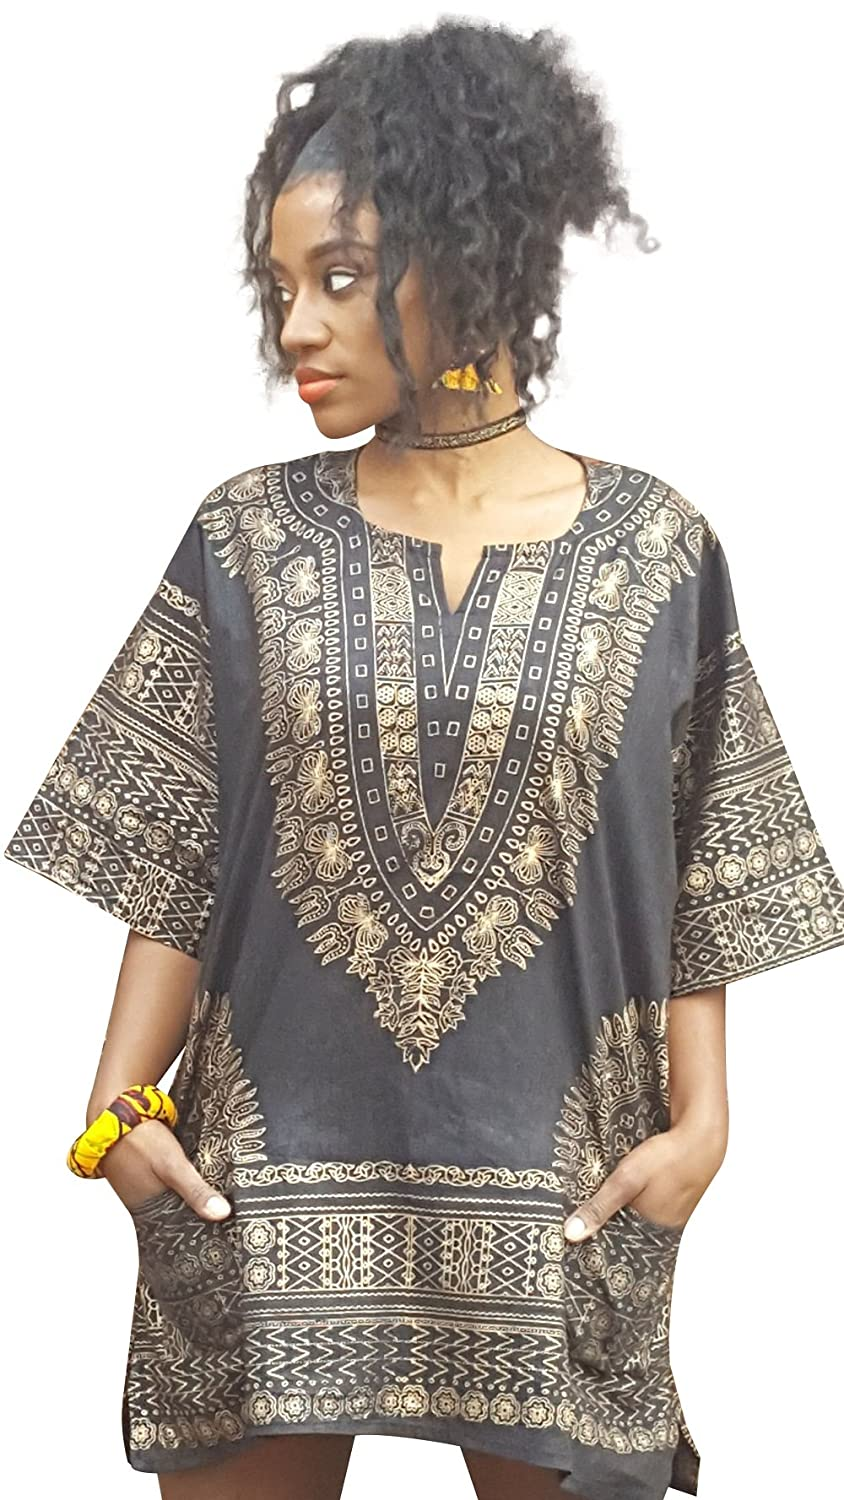 Dupsie's Black and Gold Traditional African Dashiki Shirt